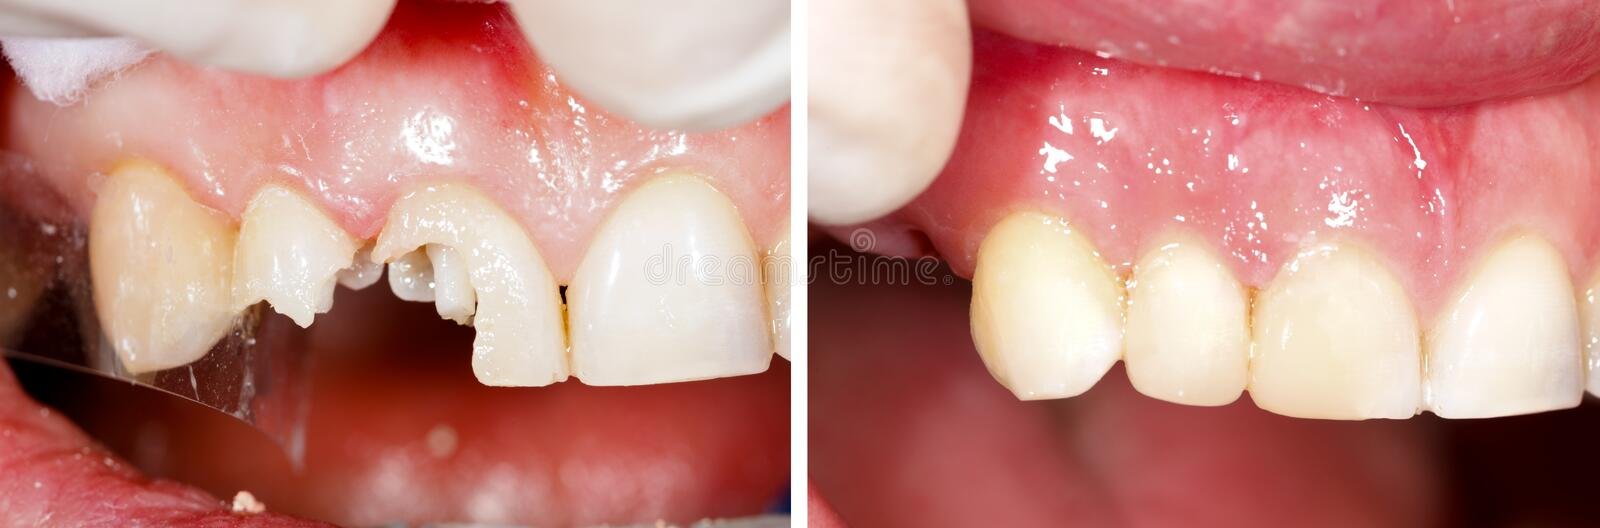 Destructed teeth filling royalty free stock photos